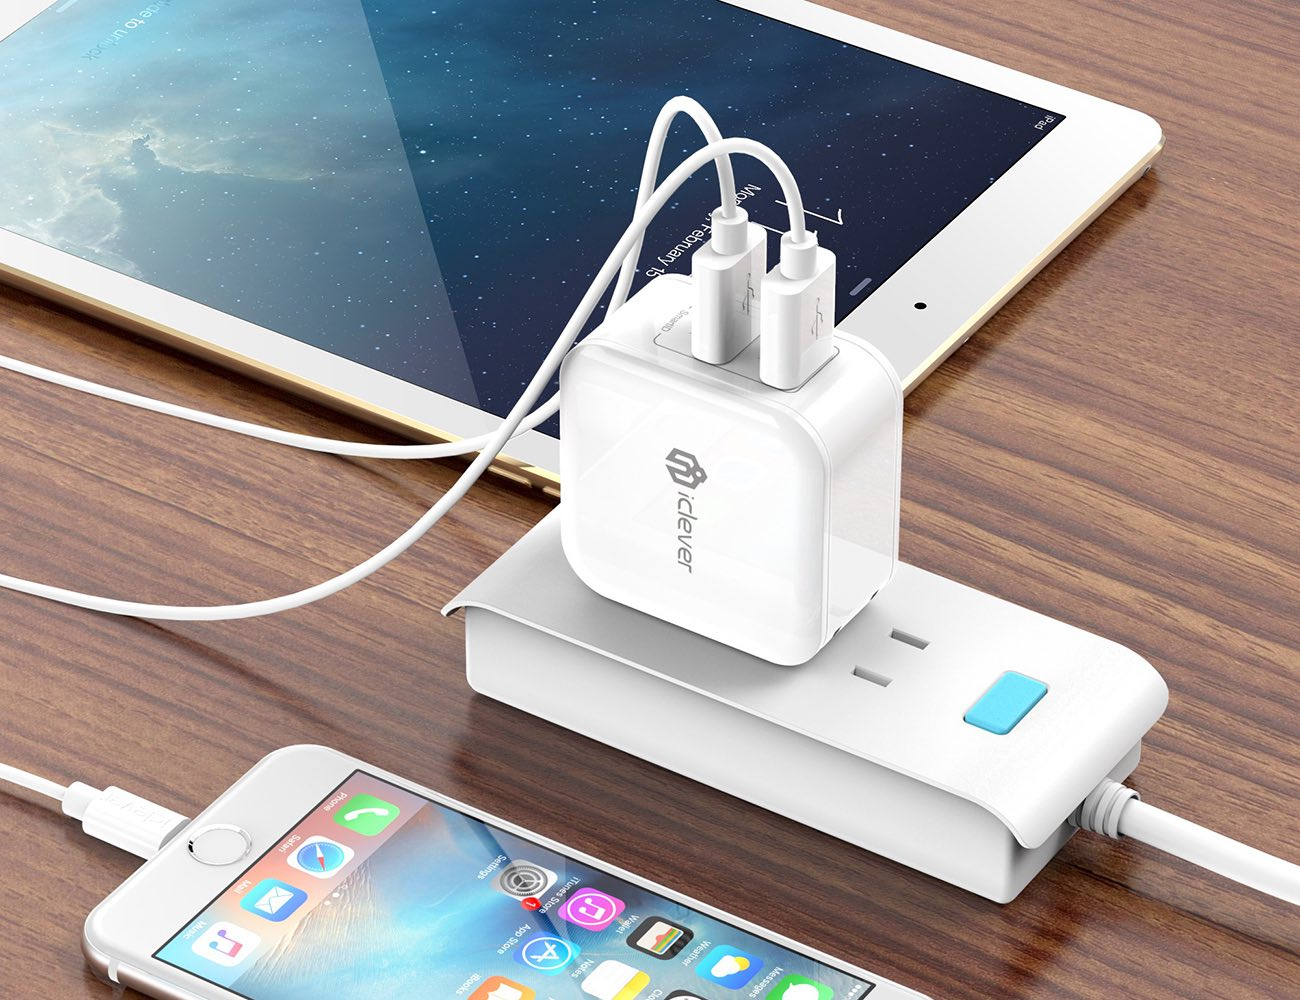 BoostCube Dual USB Wall Charger with SmartID Technology